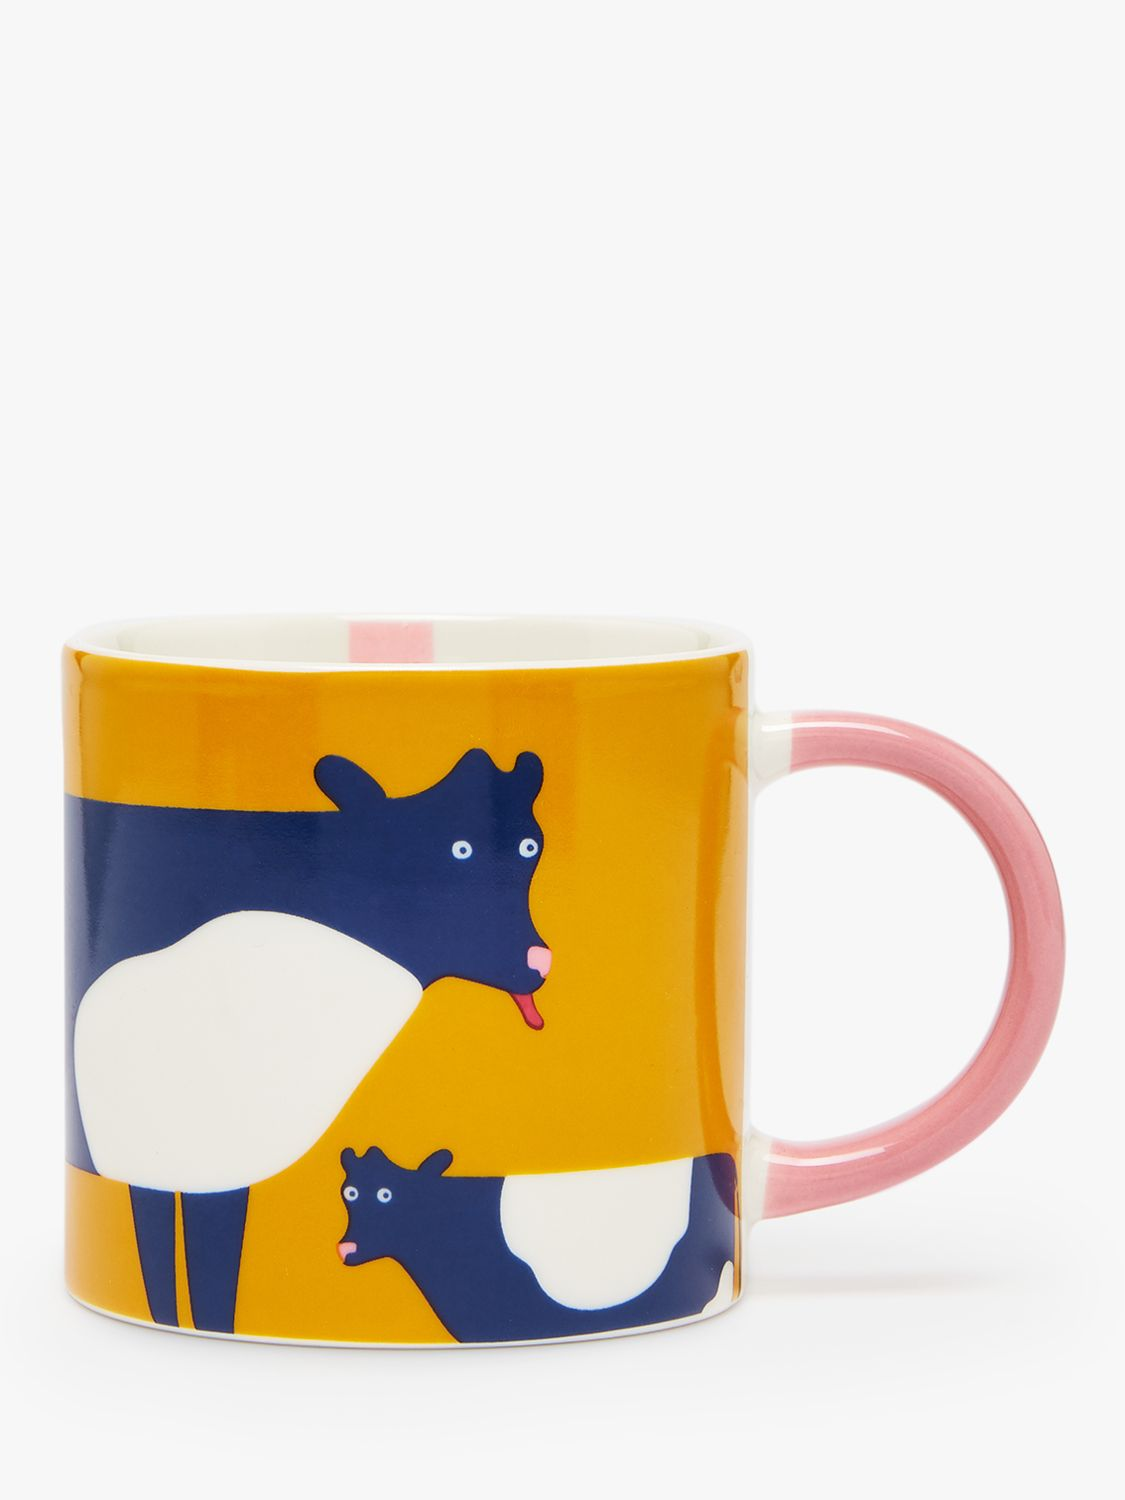 Joules Joules Udderly Cow Mug, 300ml, Yellow/Multi